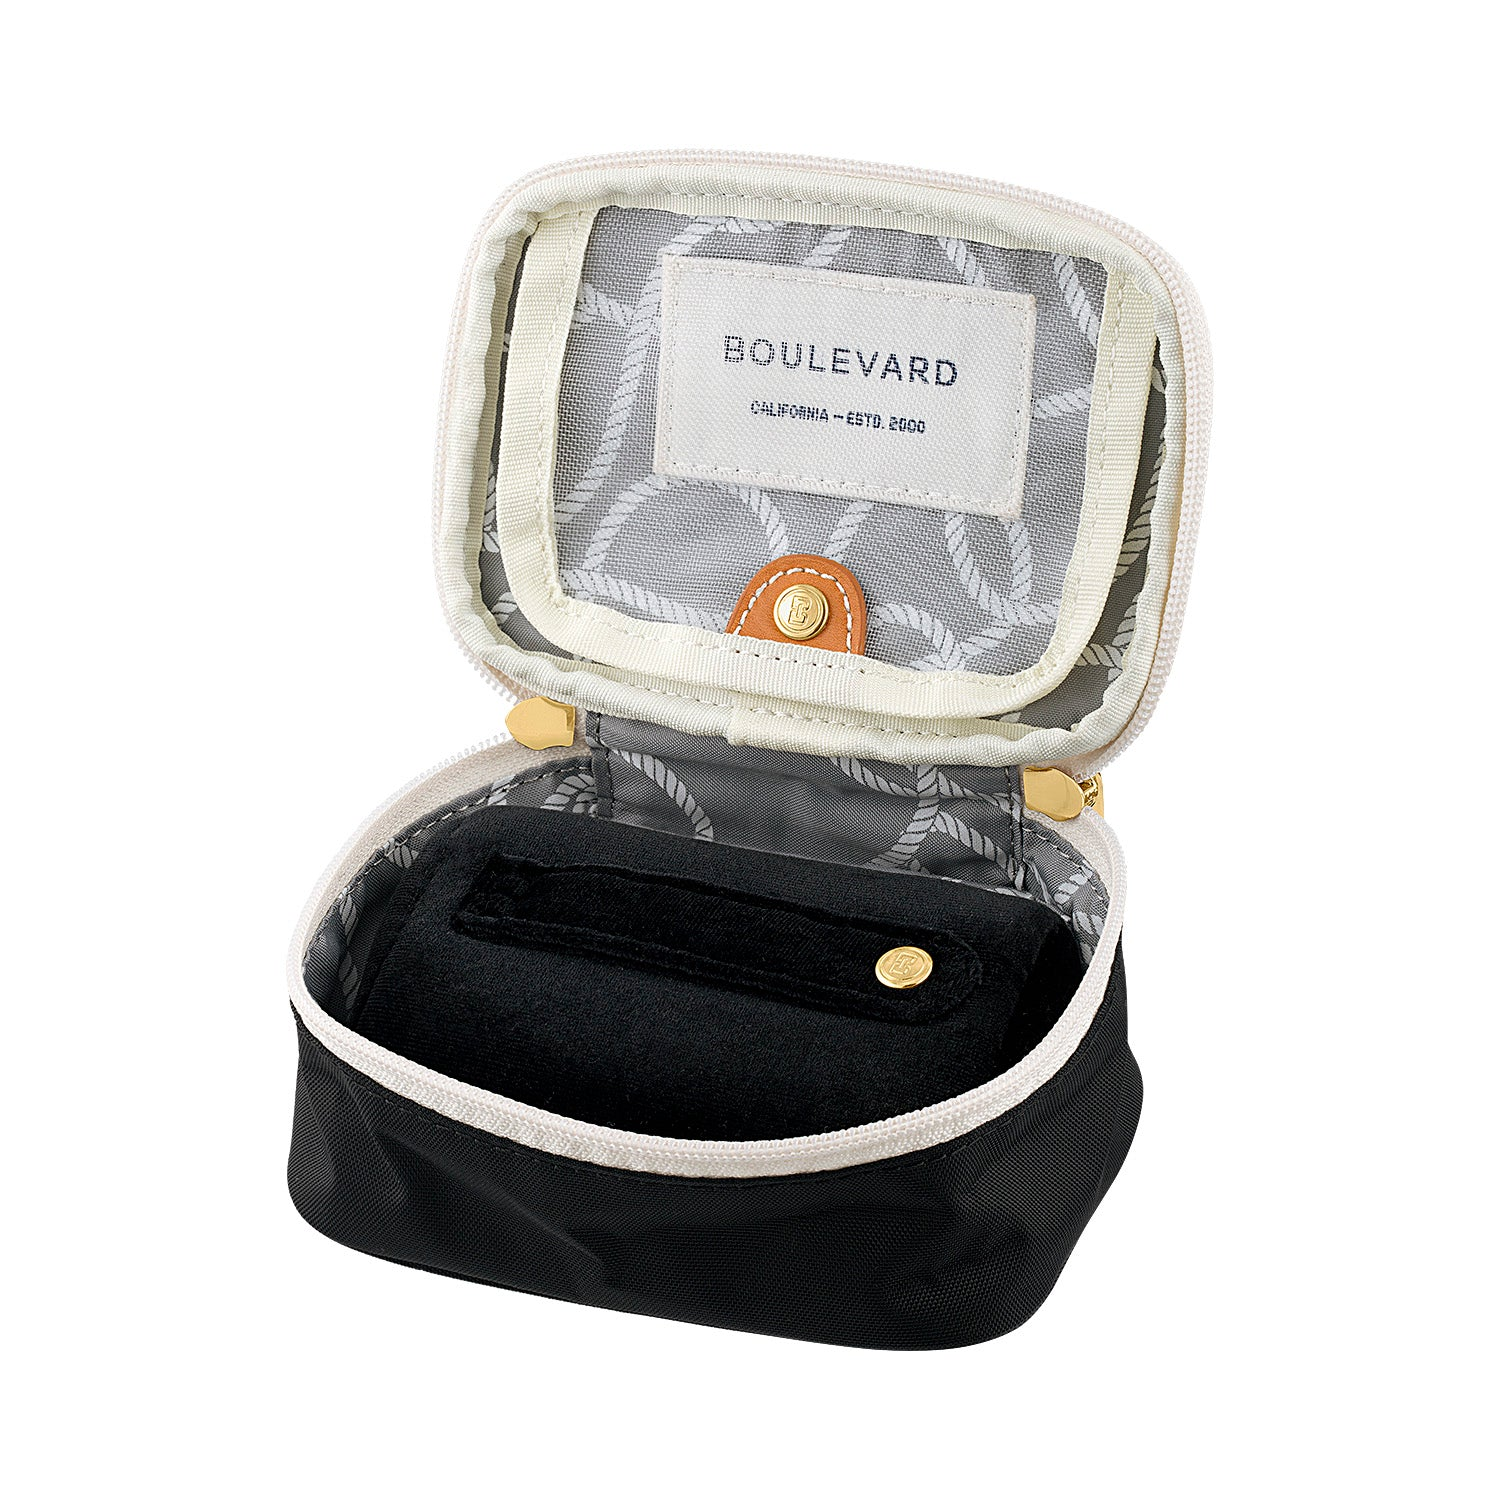 PERSONALIZED JEWELRY CASE